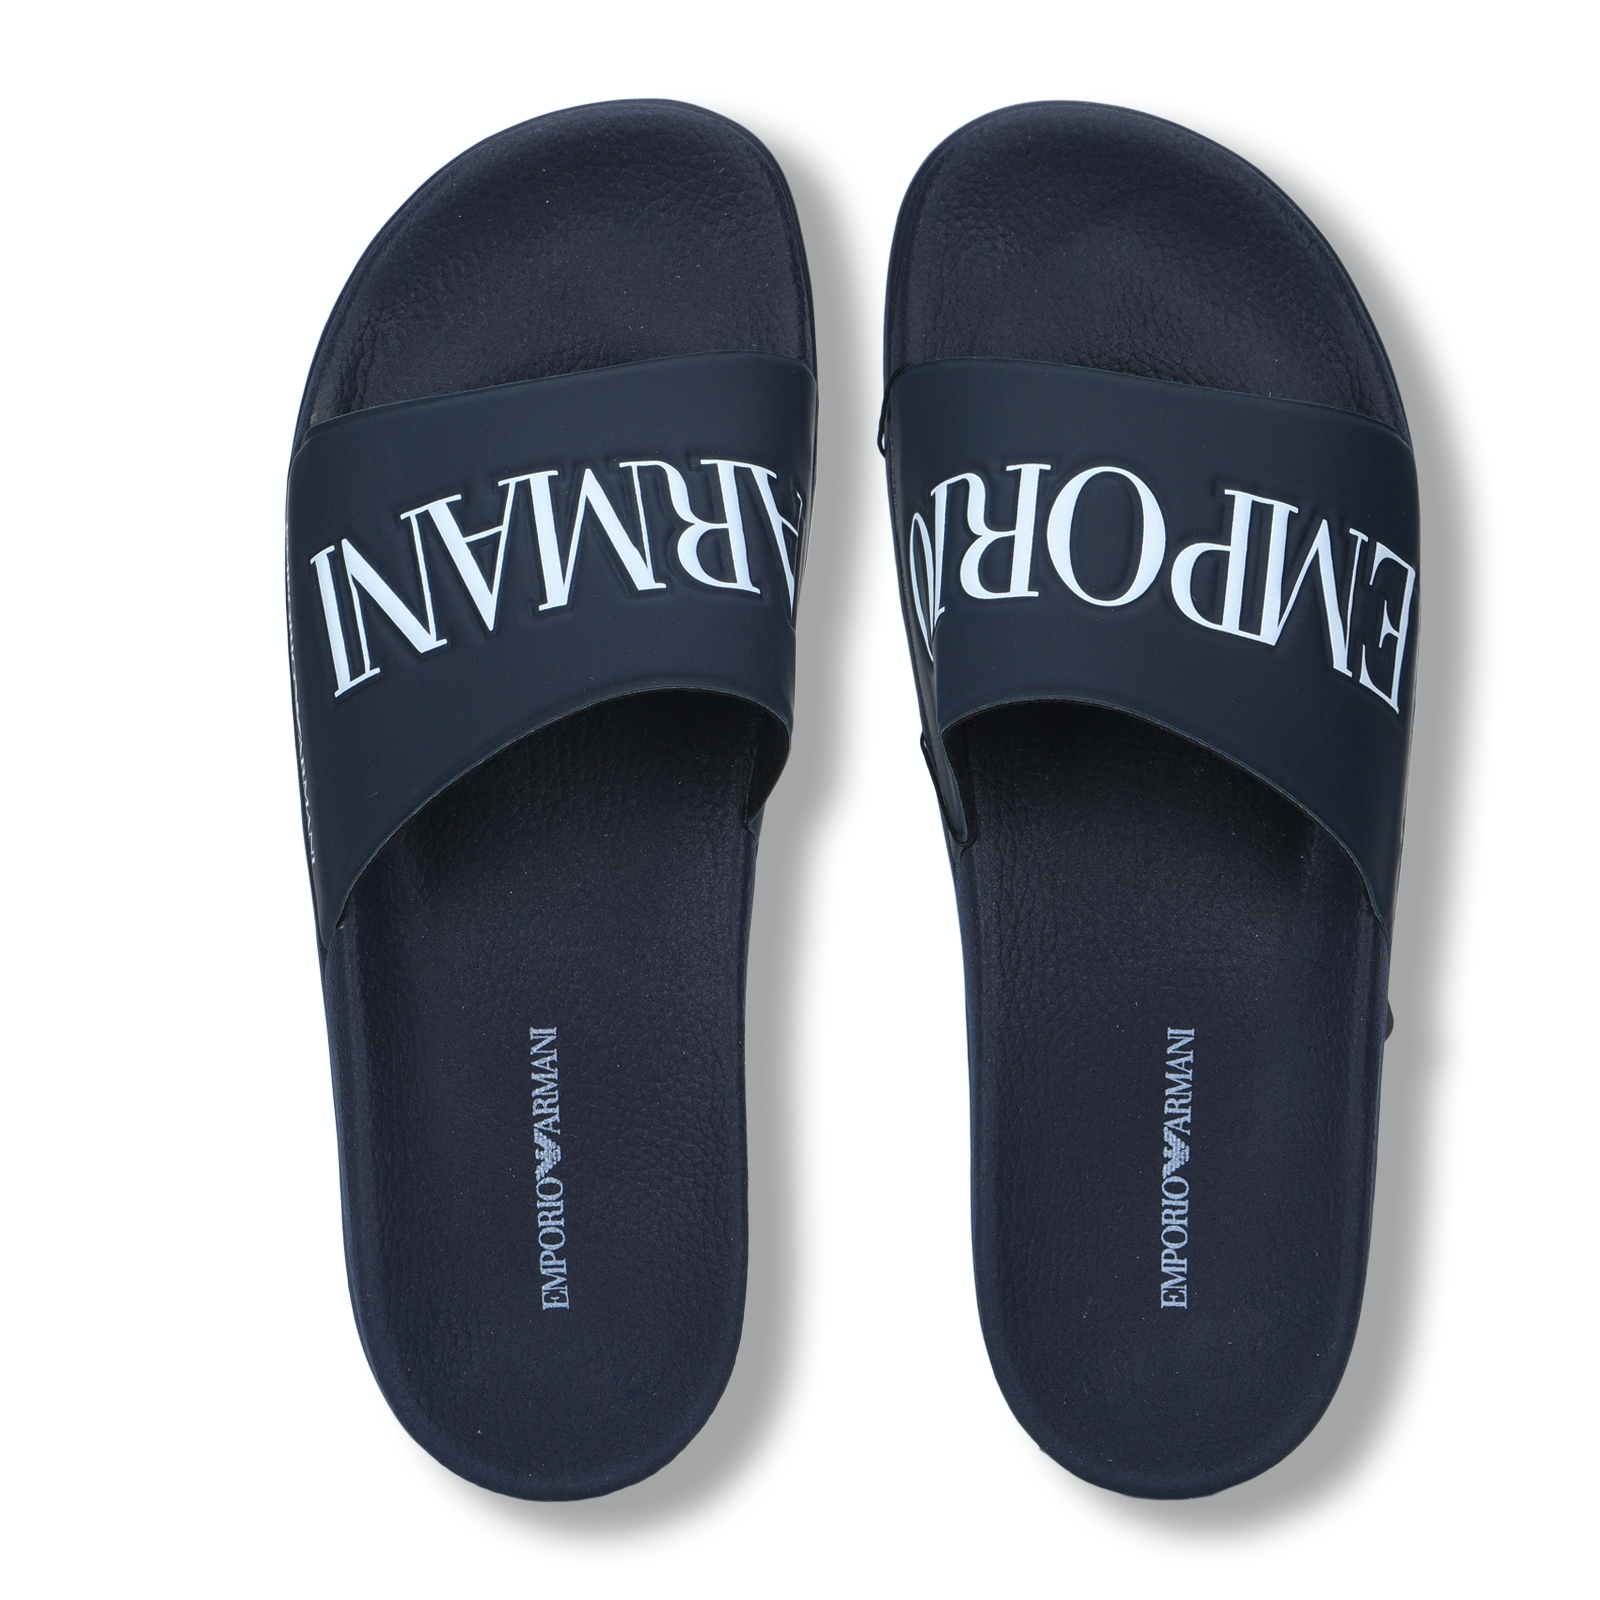 Emporio Armani Shoes, Navy Embossed